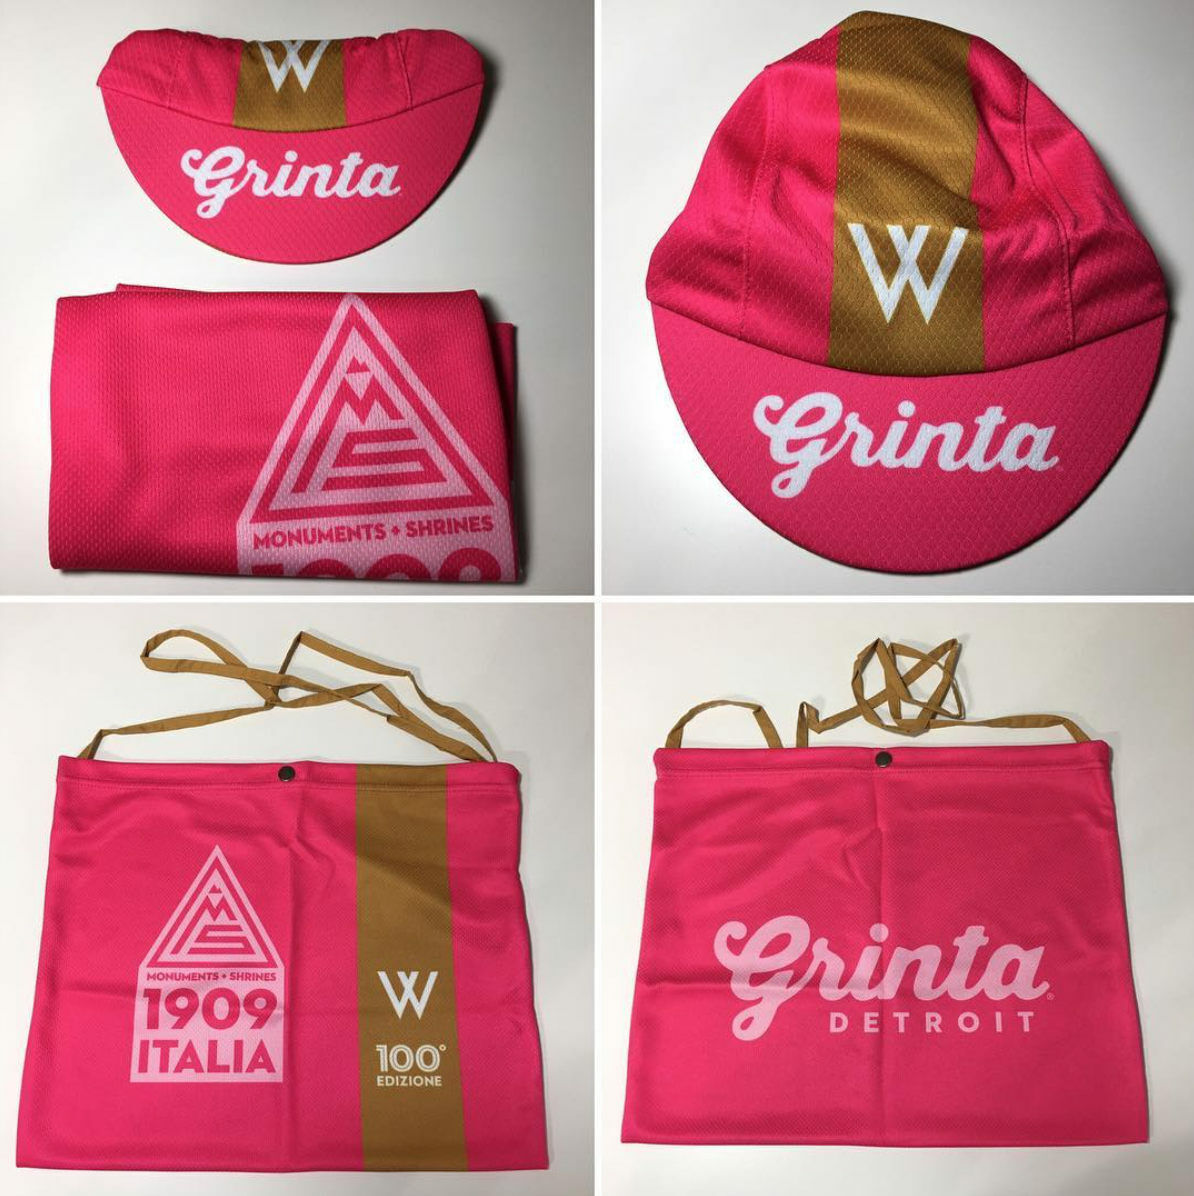 Grinta Cycling 100th Edition  Giro d'Italia Maglia pink Pink Cap & Musette Set  discount low price